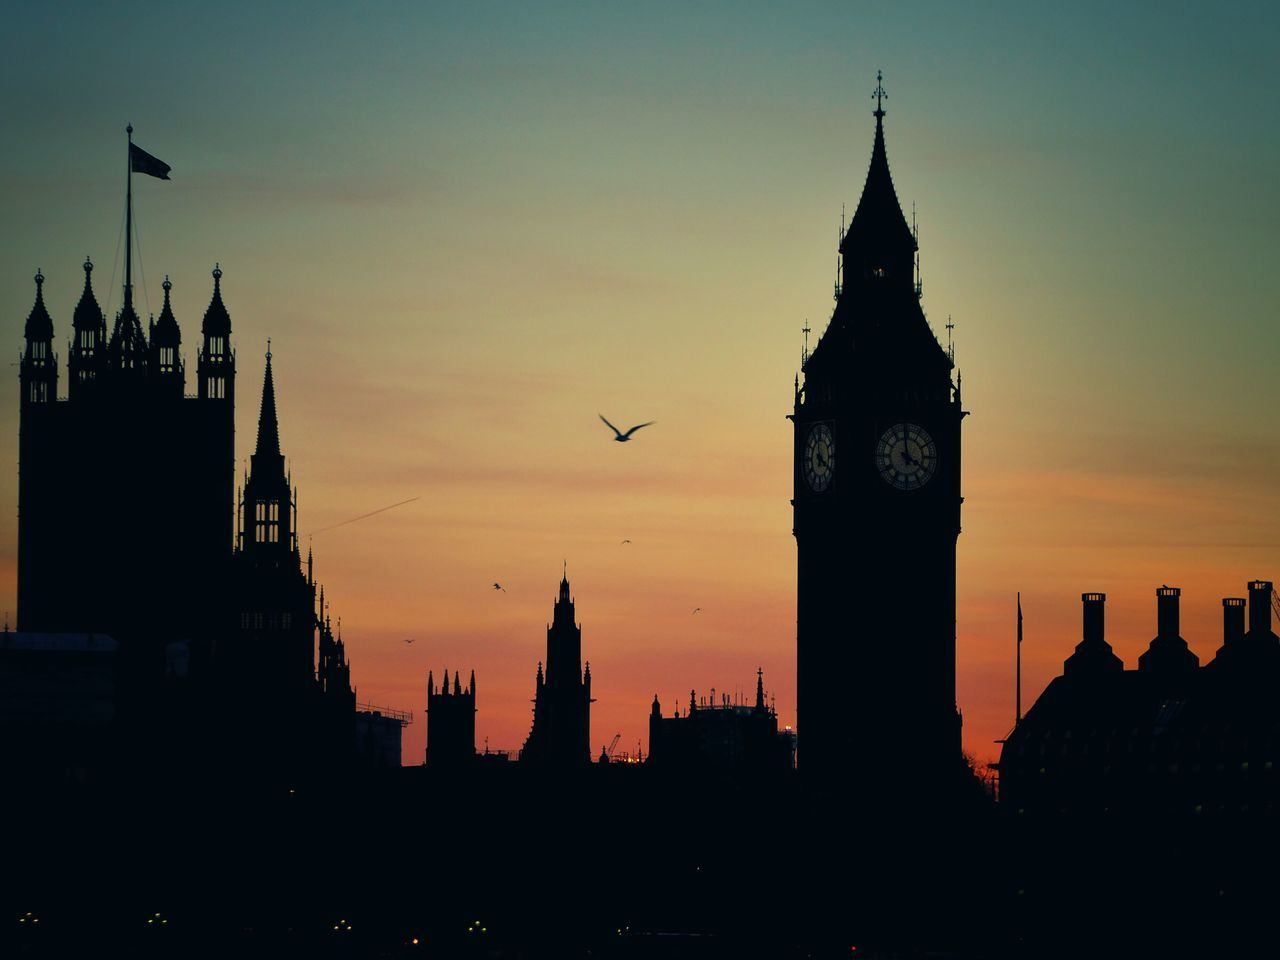 Big Ben London Westminster Architecture City Built Structure Orange Color Silhouette Tower Clock Bird Clock Tower Travel Destinations Sky Cityscape Sunset Sunset_collection Sunset Silhouettes British Britain United Kingdom EyeEmNewHere The City Light